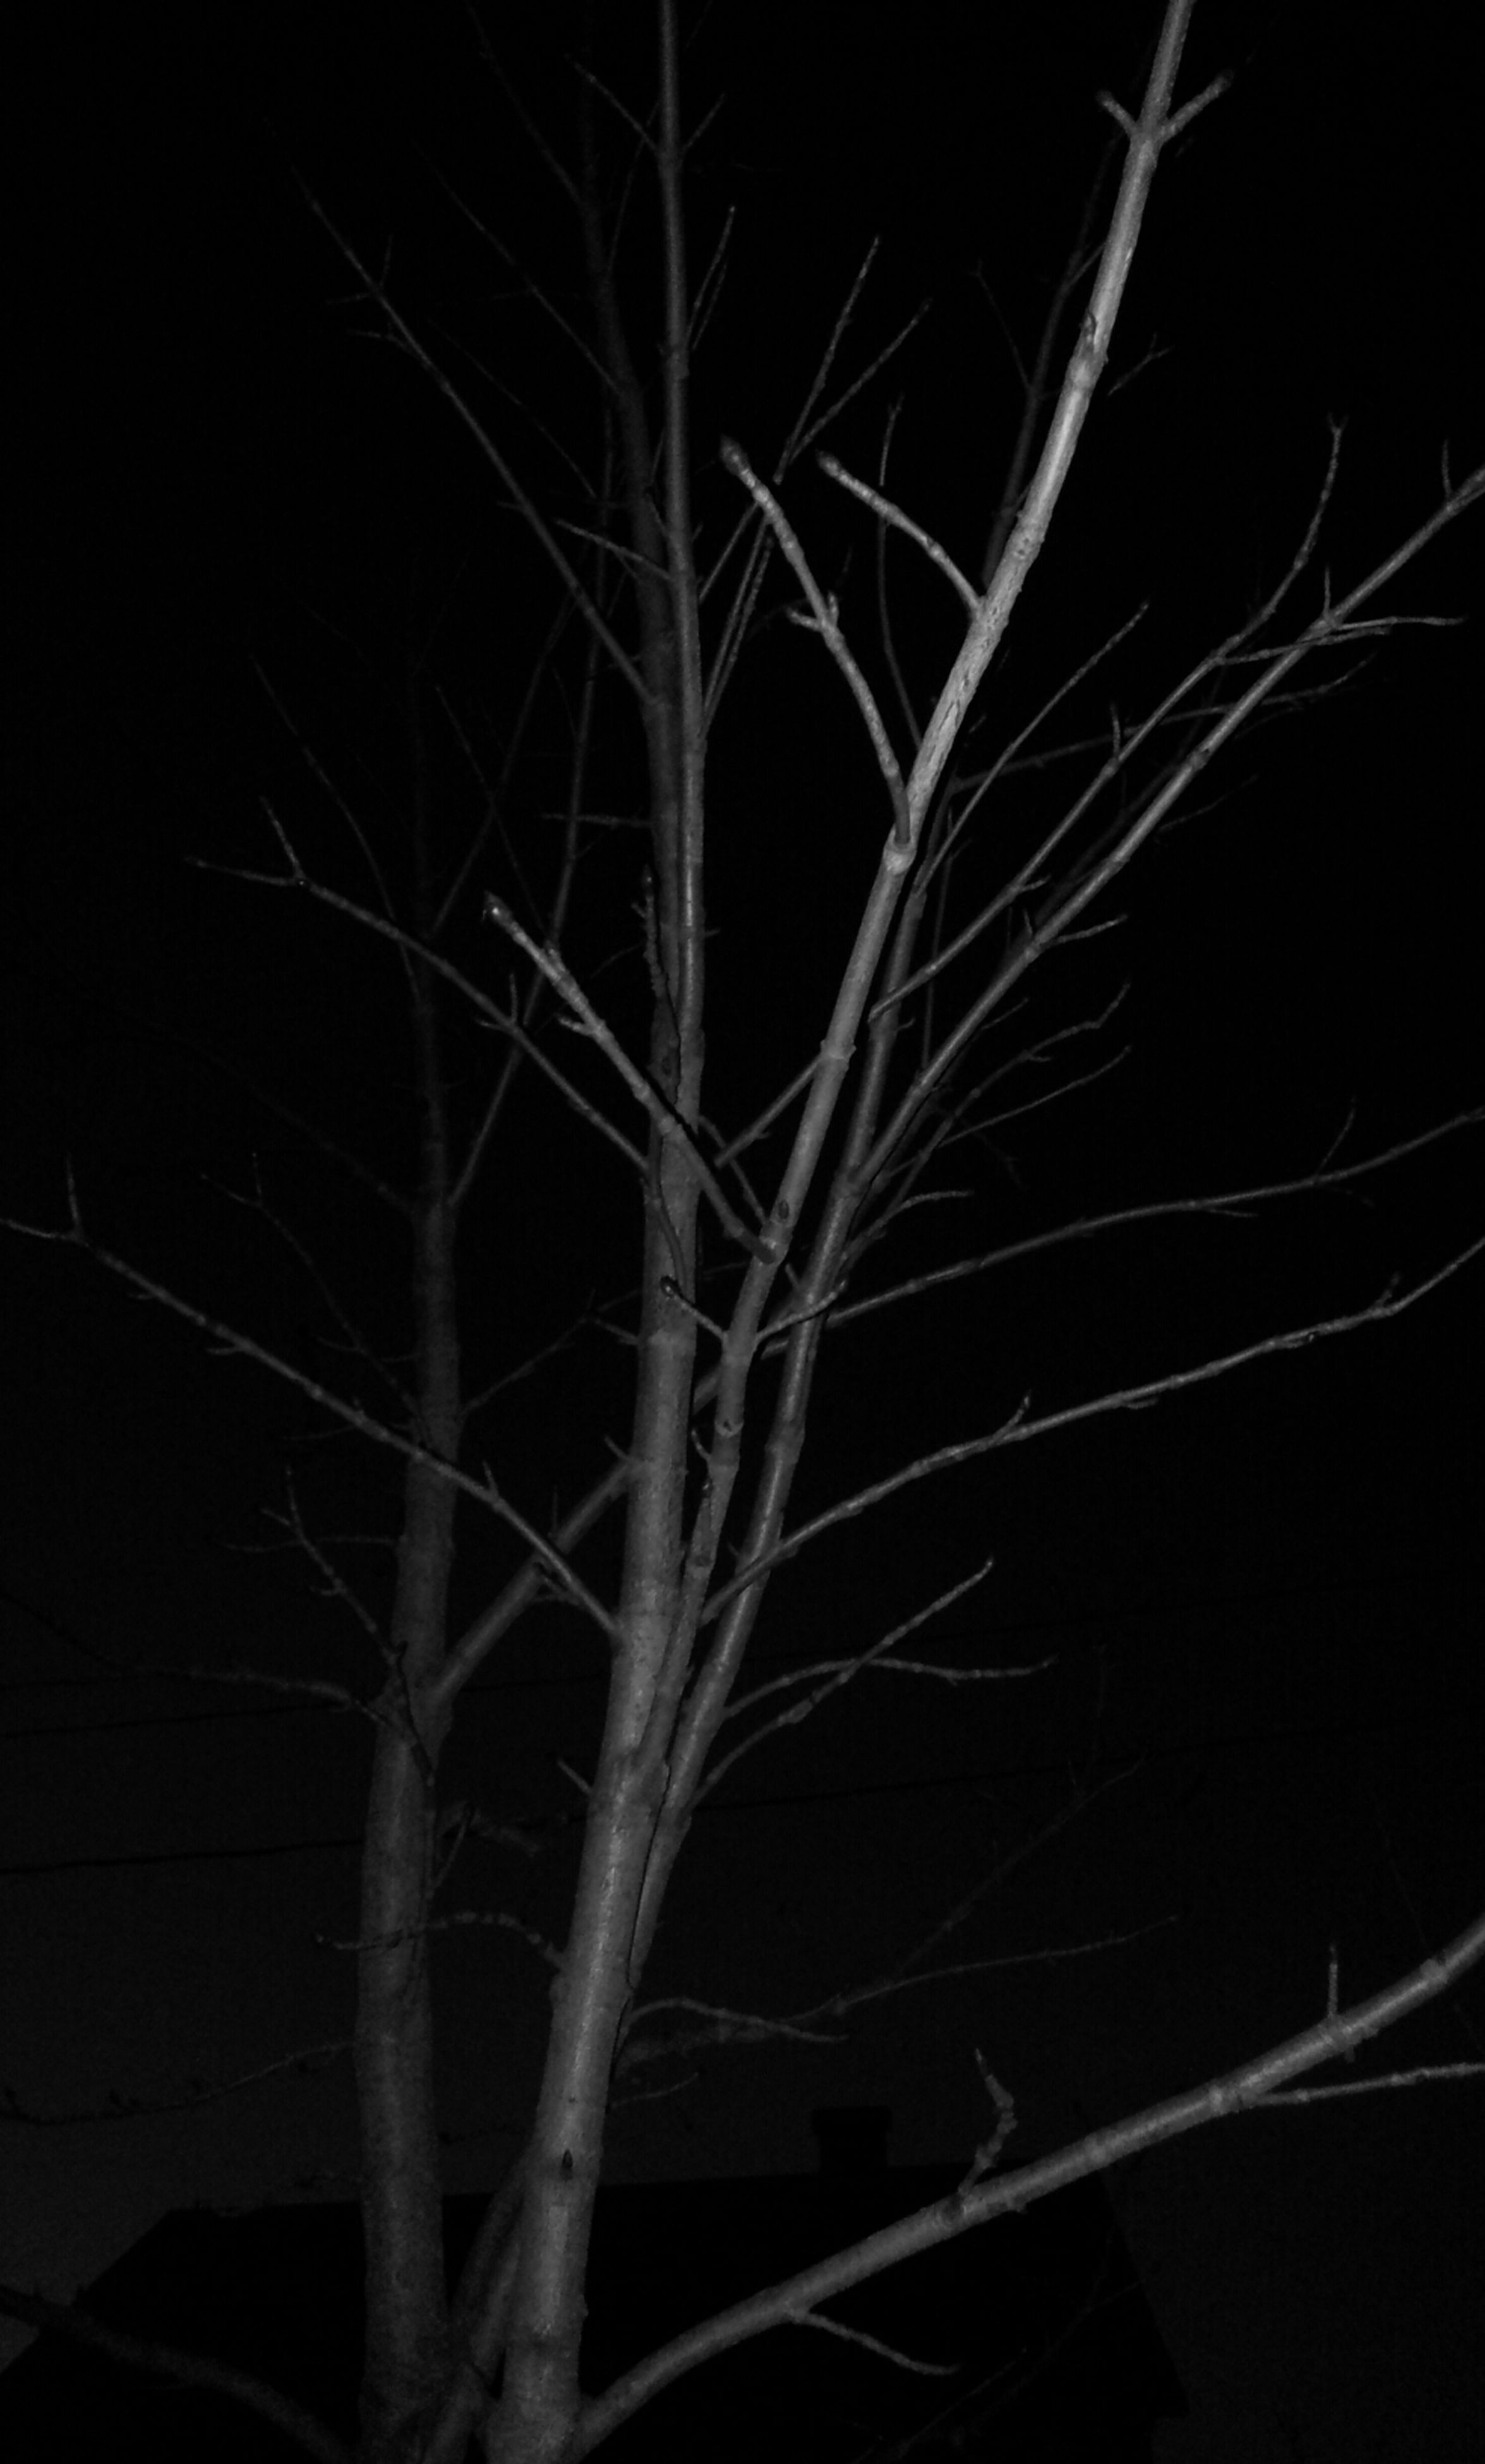 night, branch, bare tree, nature, growth, dark, tranquility, plant, beauty in nature, silhouette, close-up, low angle view, outdoors, clear sky, tree, no people, twig, copy space, black background, moon